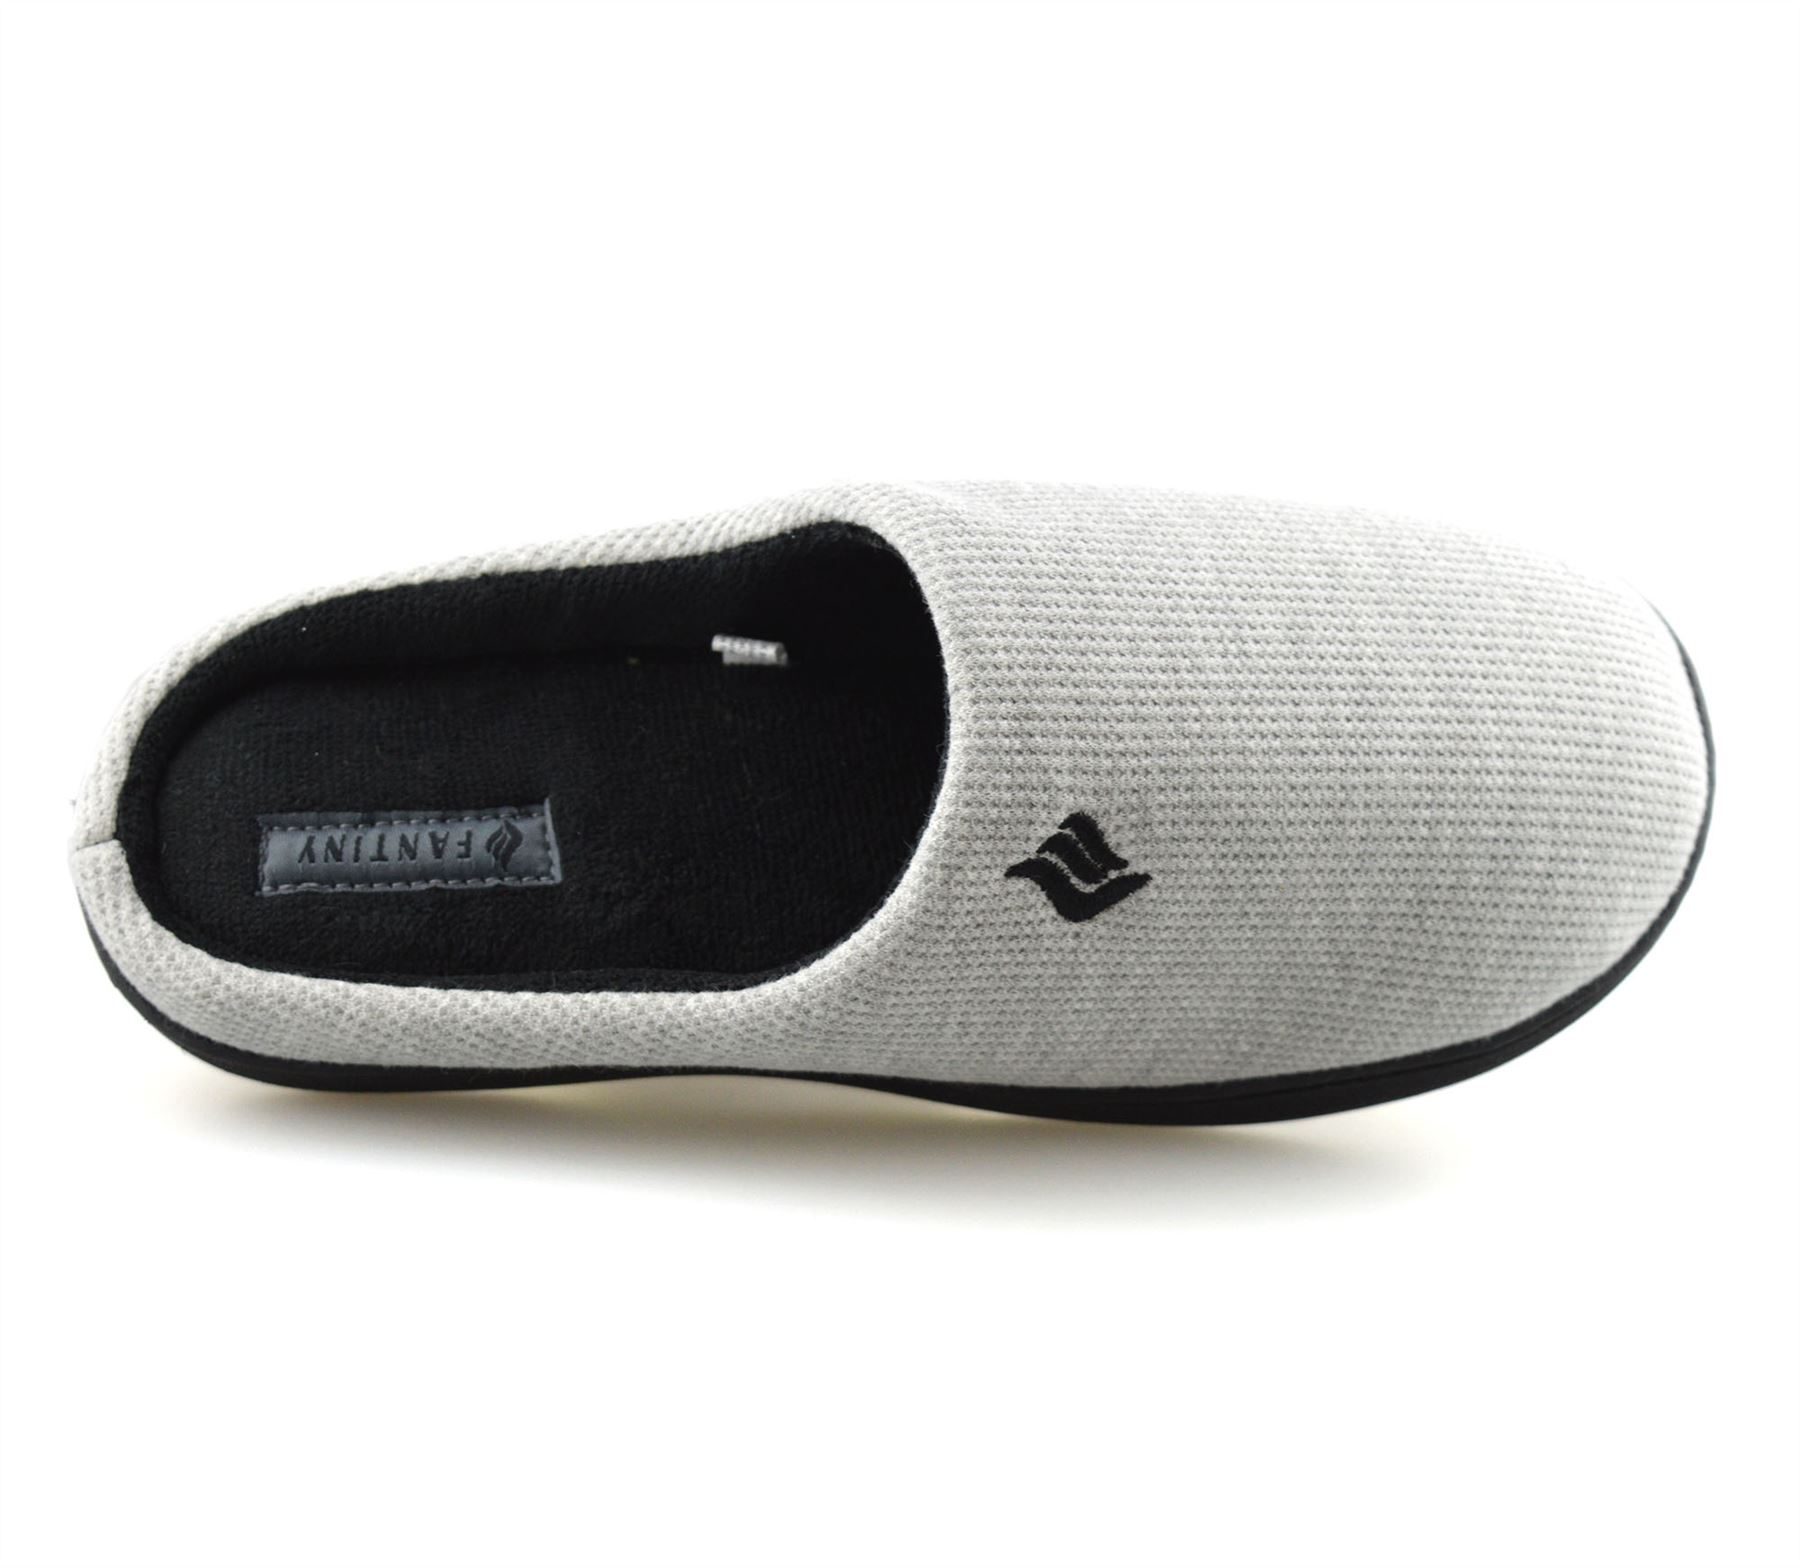 Mens-Memory-Foam-Warm-Fleece-Lined-Cotton-Slippers-Slip-On-Clog-Mules-Shoes-Size thumbnail 31